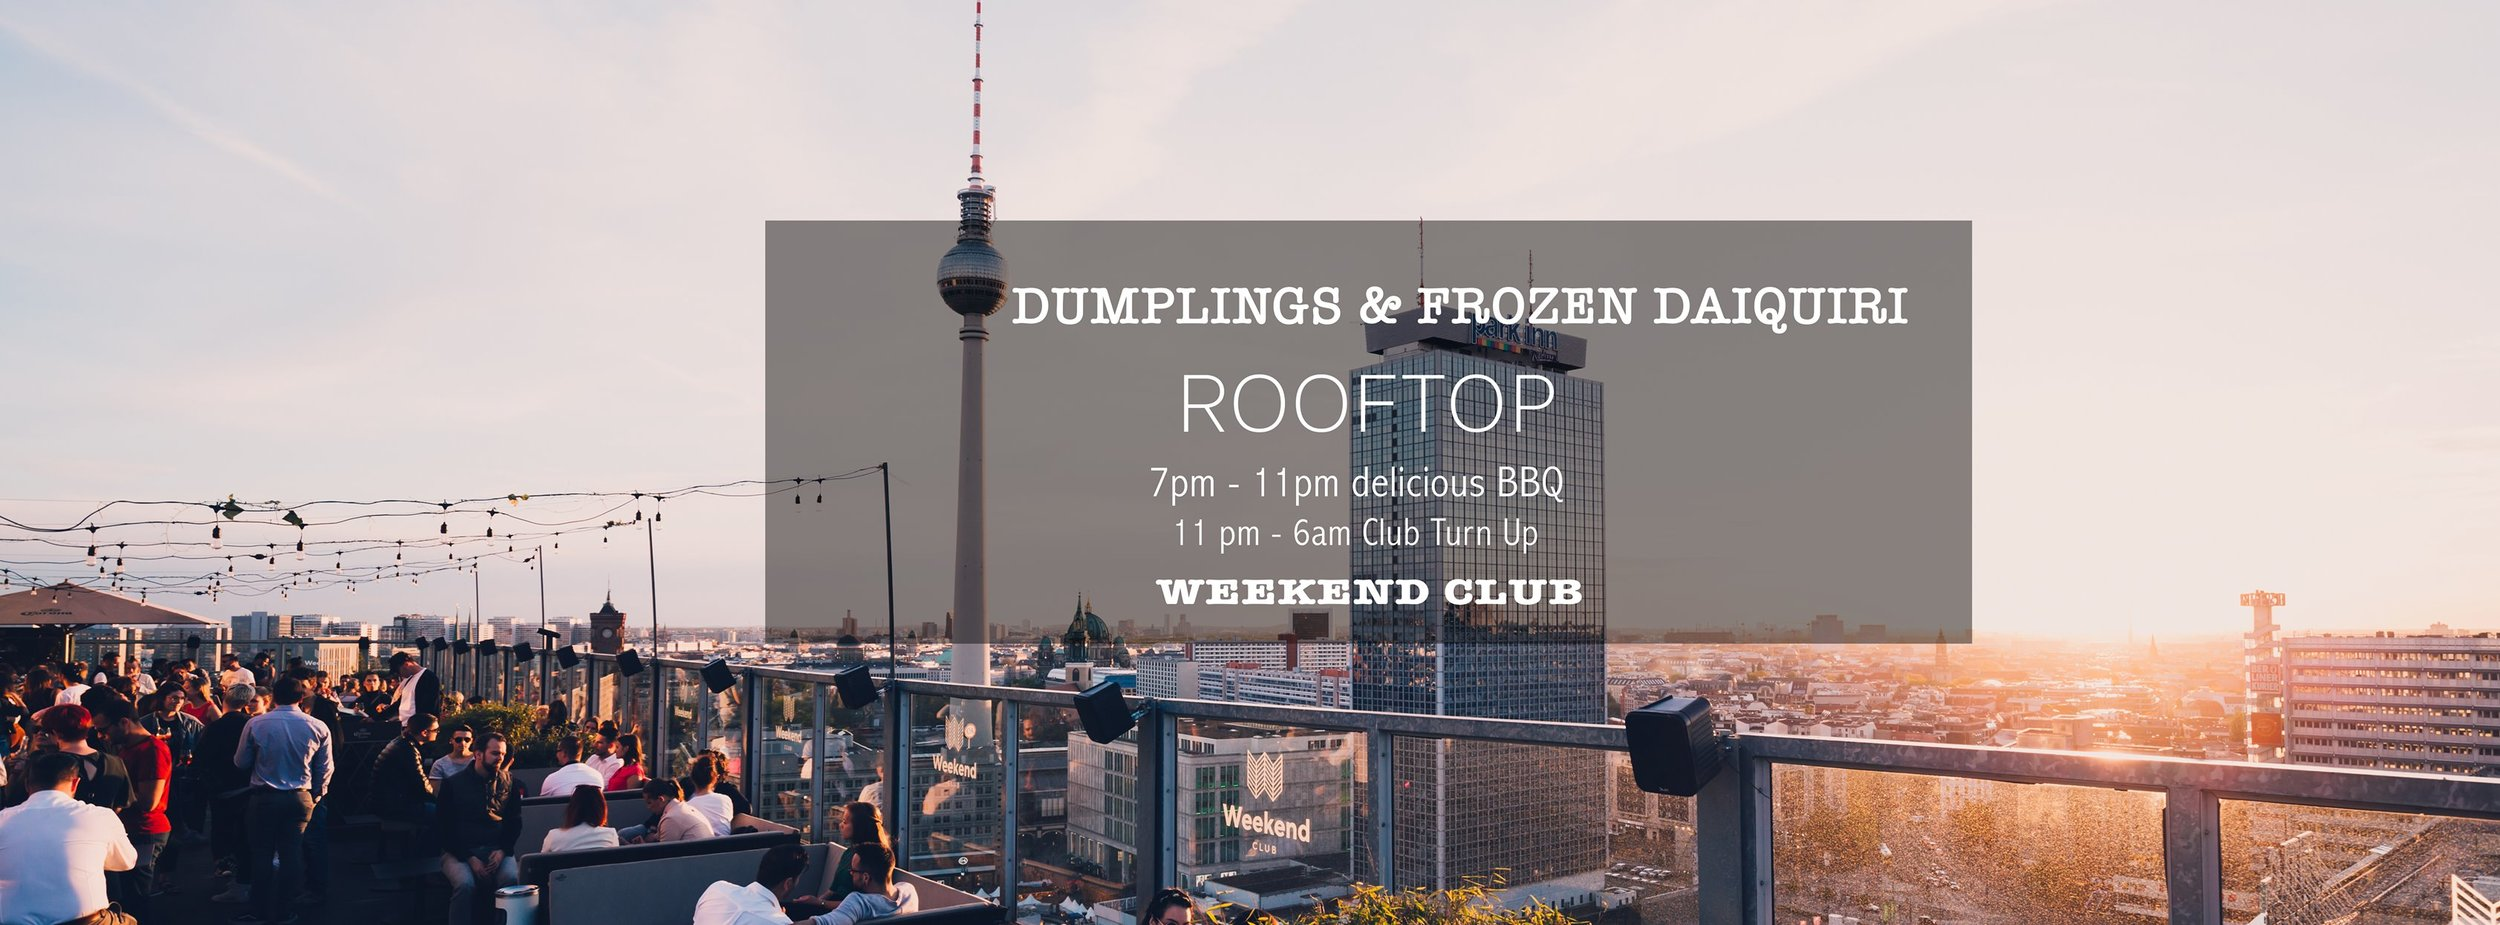 Dumplings & Frozen Daiquiri - Urban Rooftop Open Air  Enjoy delicious dumplings & frozen Daiquiris at our rooftop. Relax with some wavy Hip Hop sounds until it get's down from 11pm in our club.